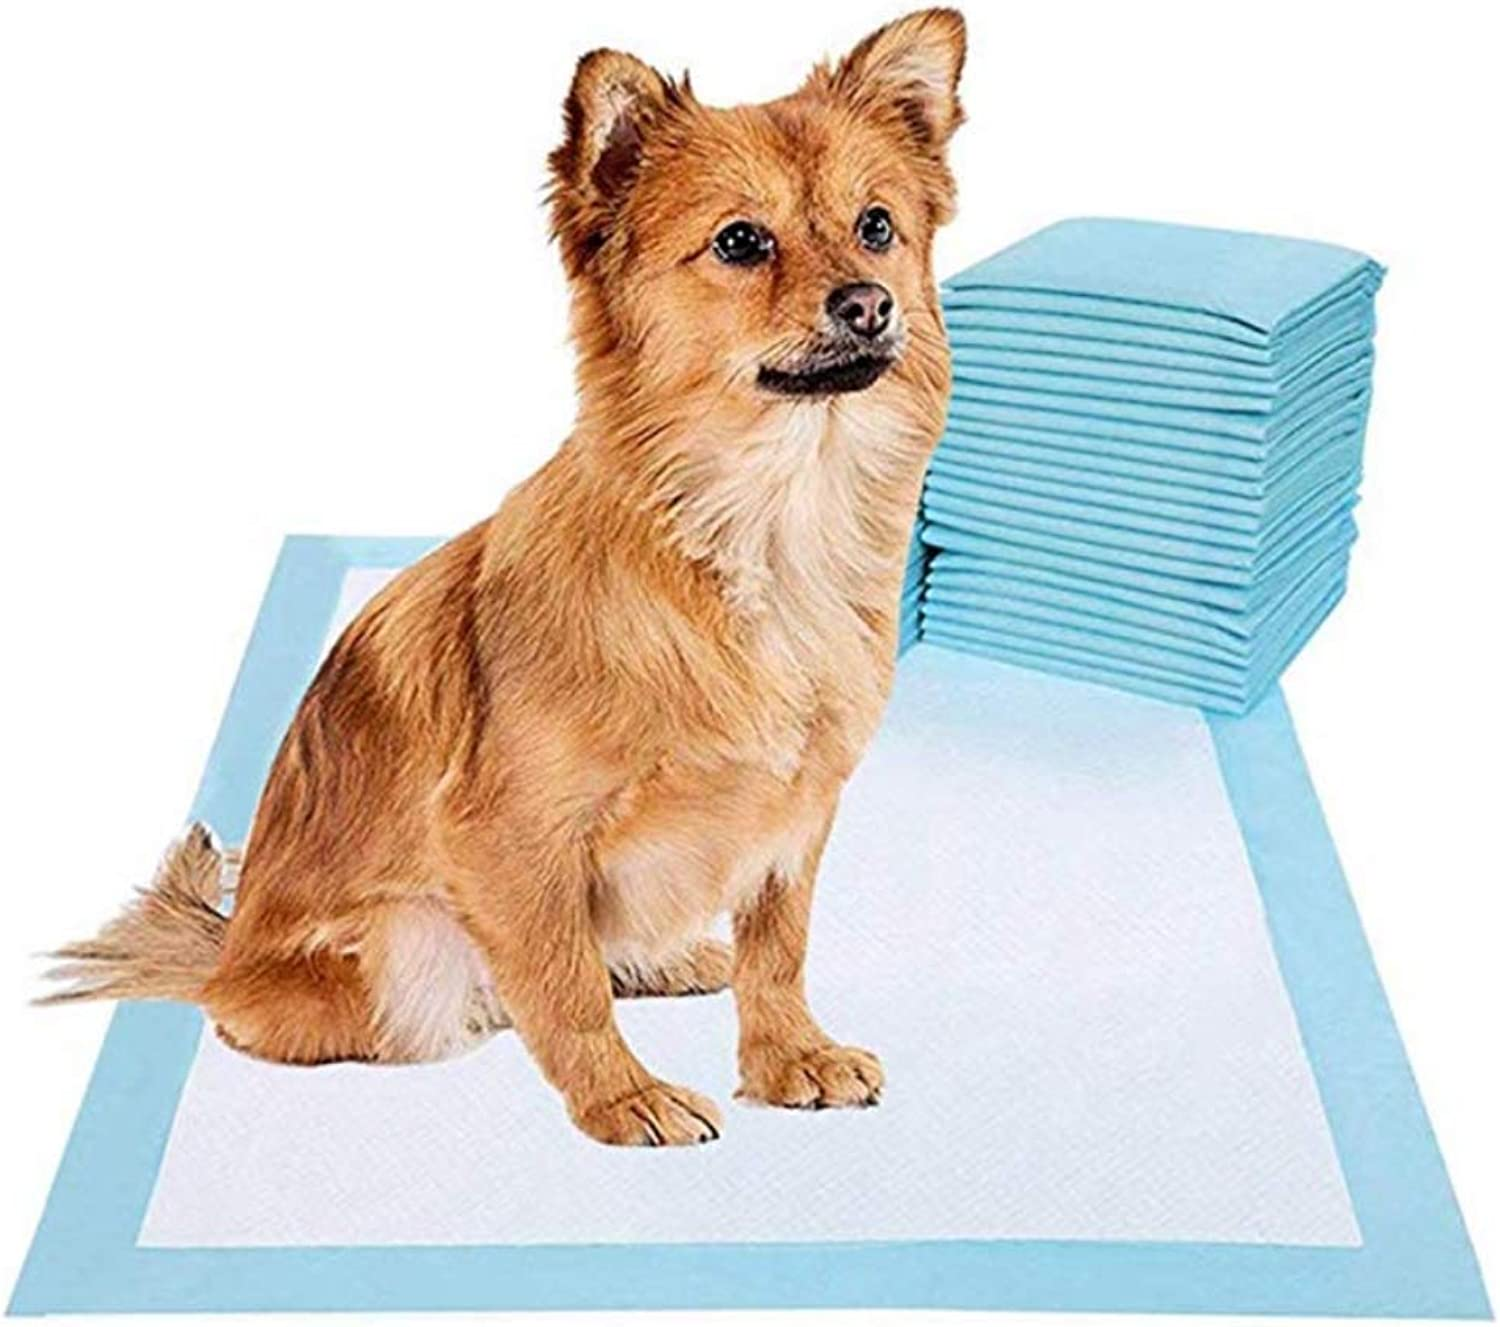 60X60cm Puppy Training Pads Dog Pee Pad for Potty Dogs & Cats Doggy Pet Supplies for Puppies All Absorbent Disposable Doggie inDoors Piddle Absorbent LeakProof Urine Holder,60  90cm